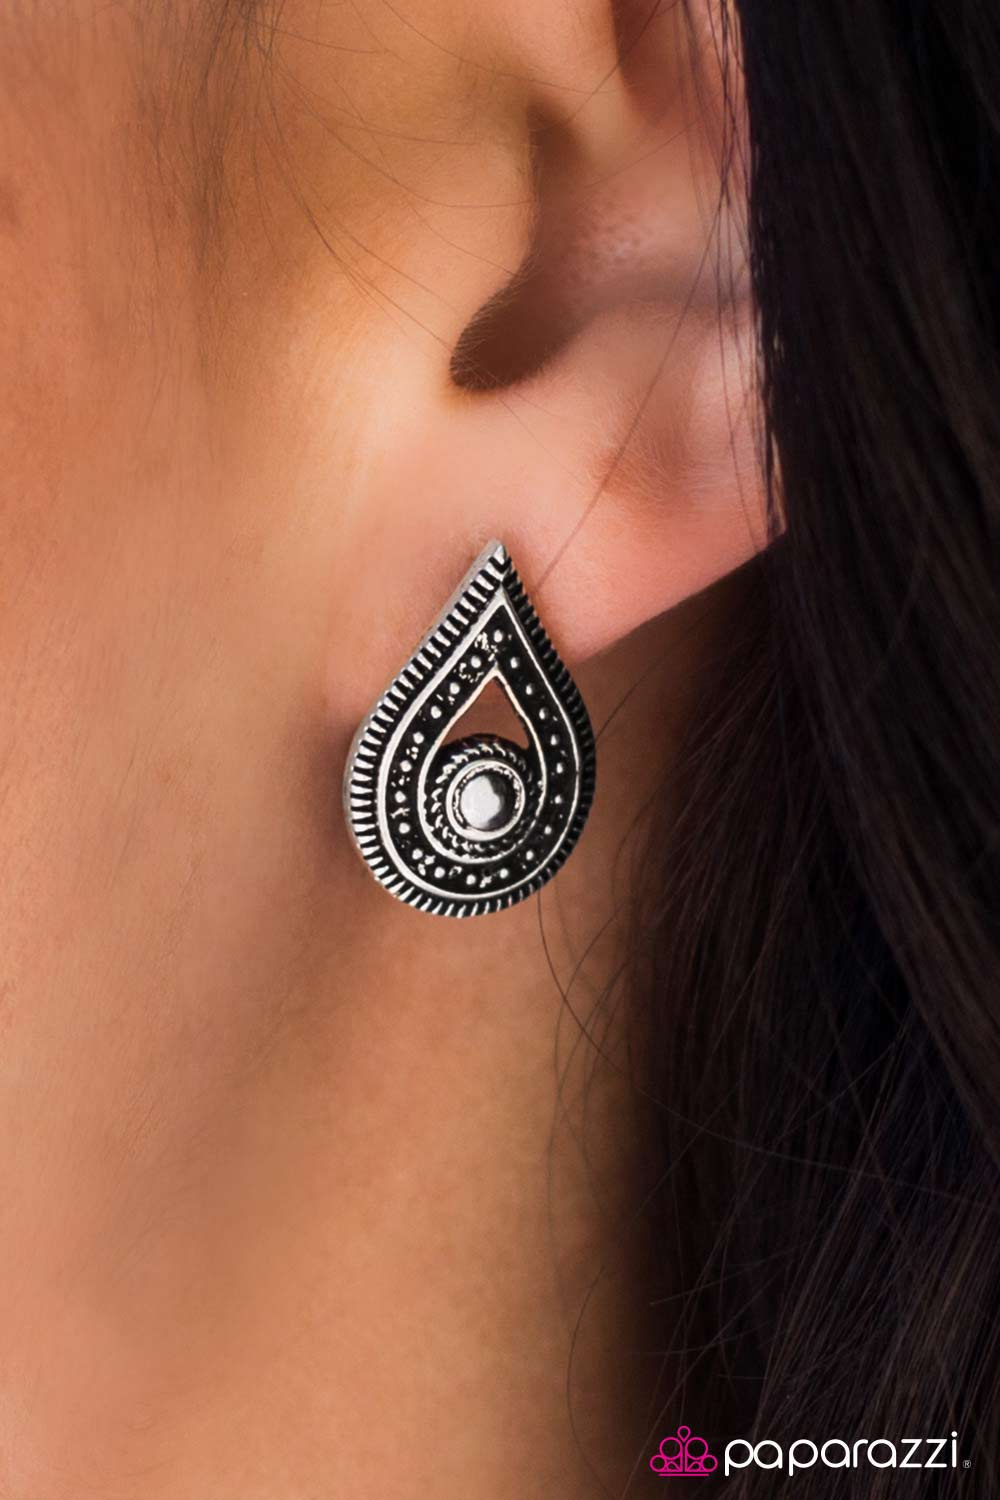 Light My Fire - Paparazzi earrings